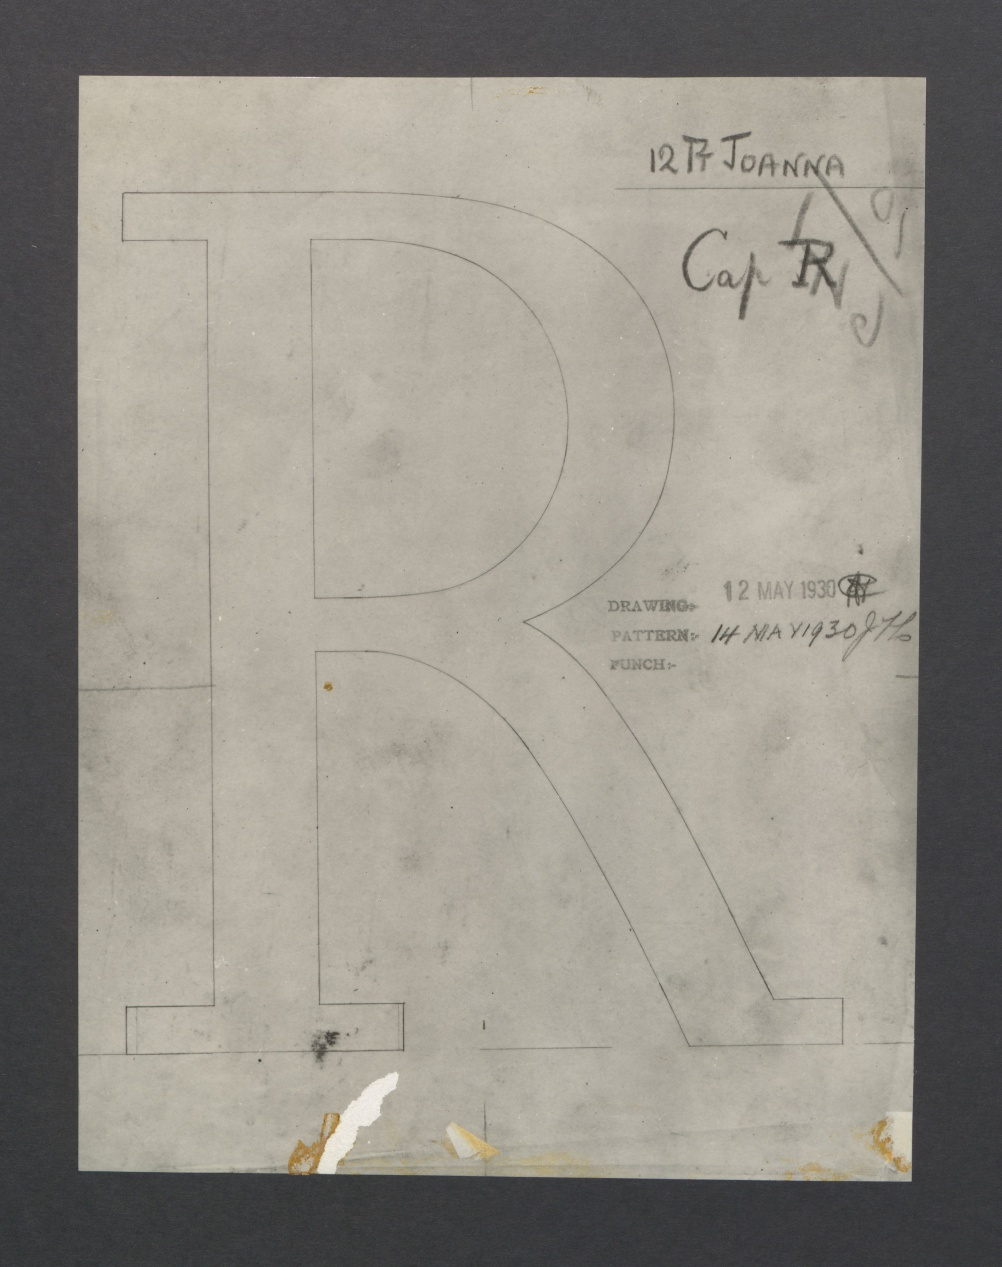 One of the Caslon Foundry drawings for the first cutting of Joanna